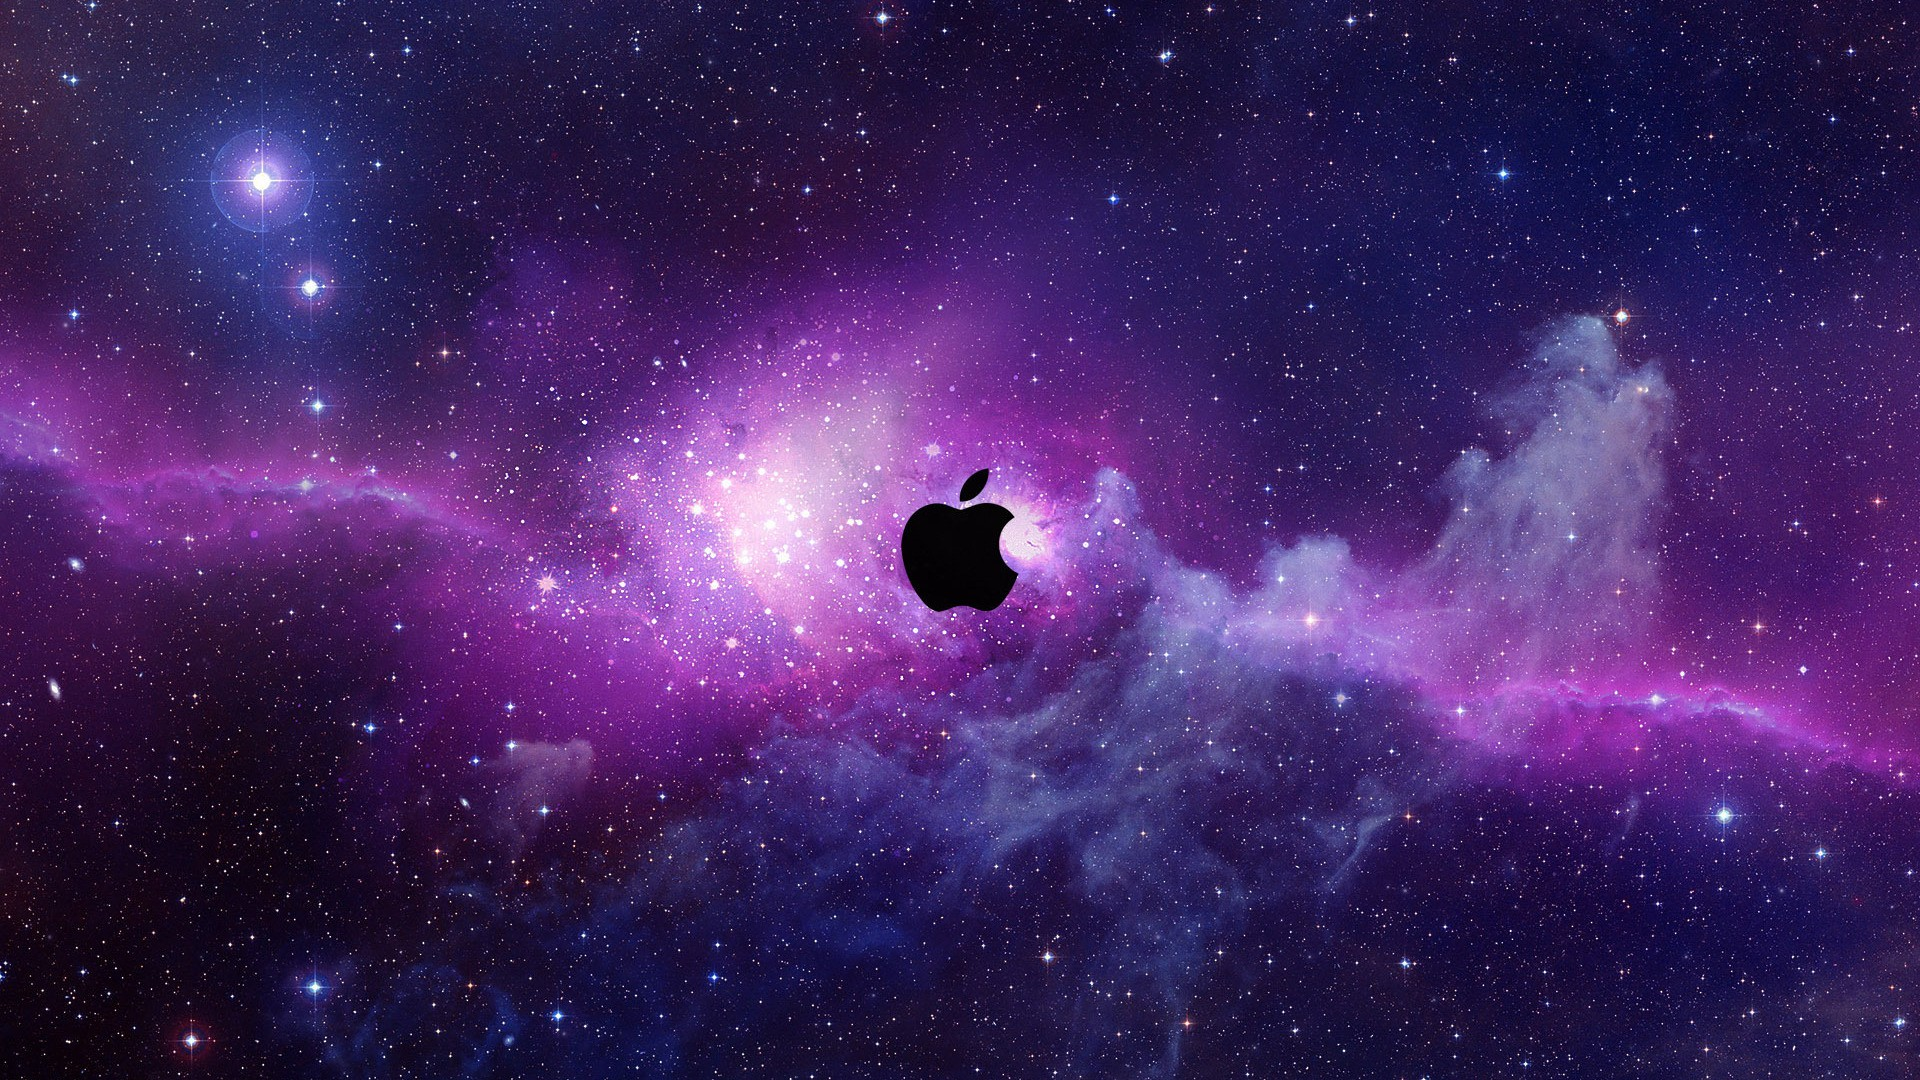 Outer Space Wallpaper 1920x1080 Outer Space Stars Apple Inc Logos 1920x1080